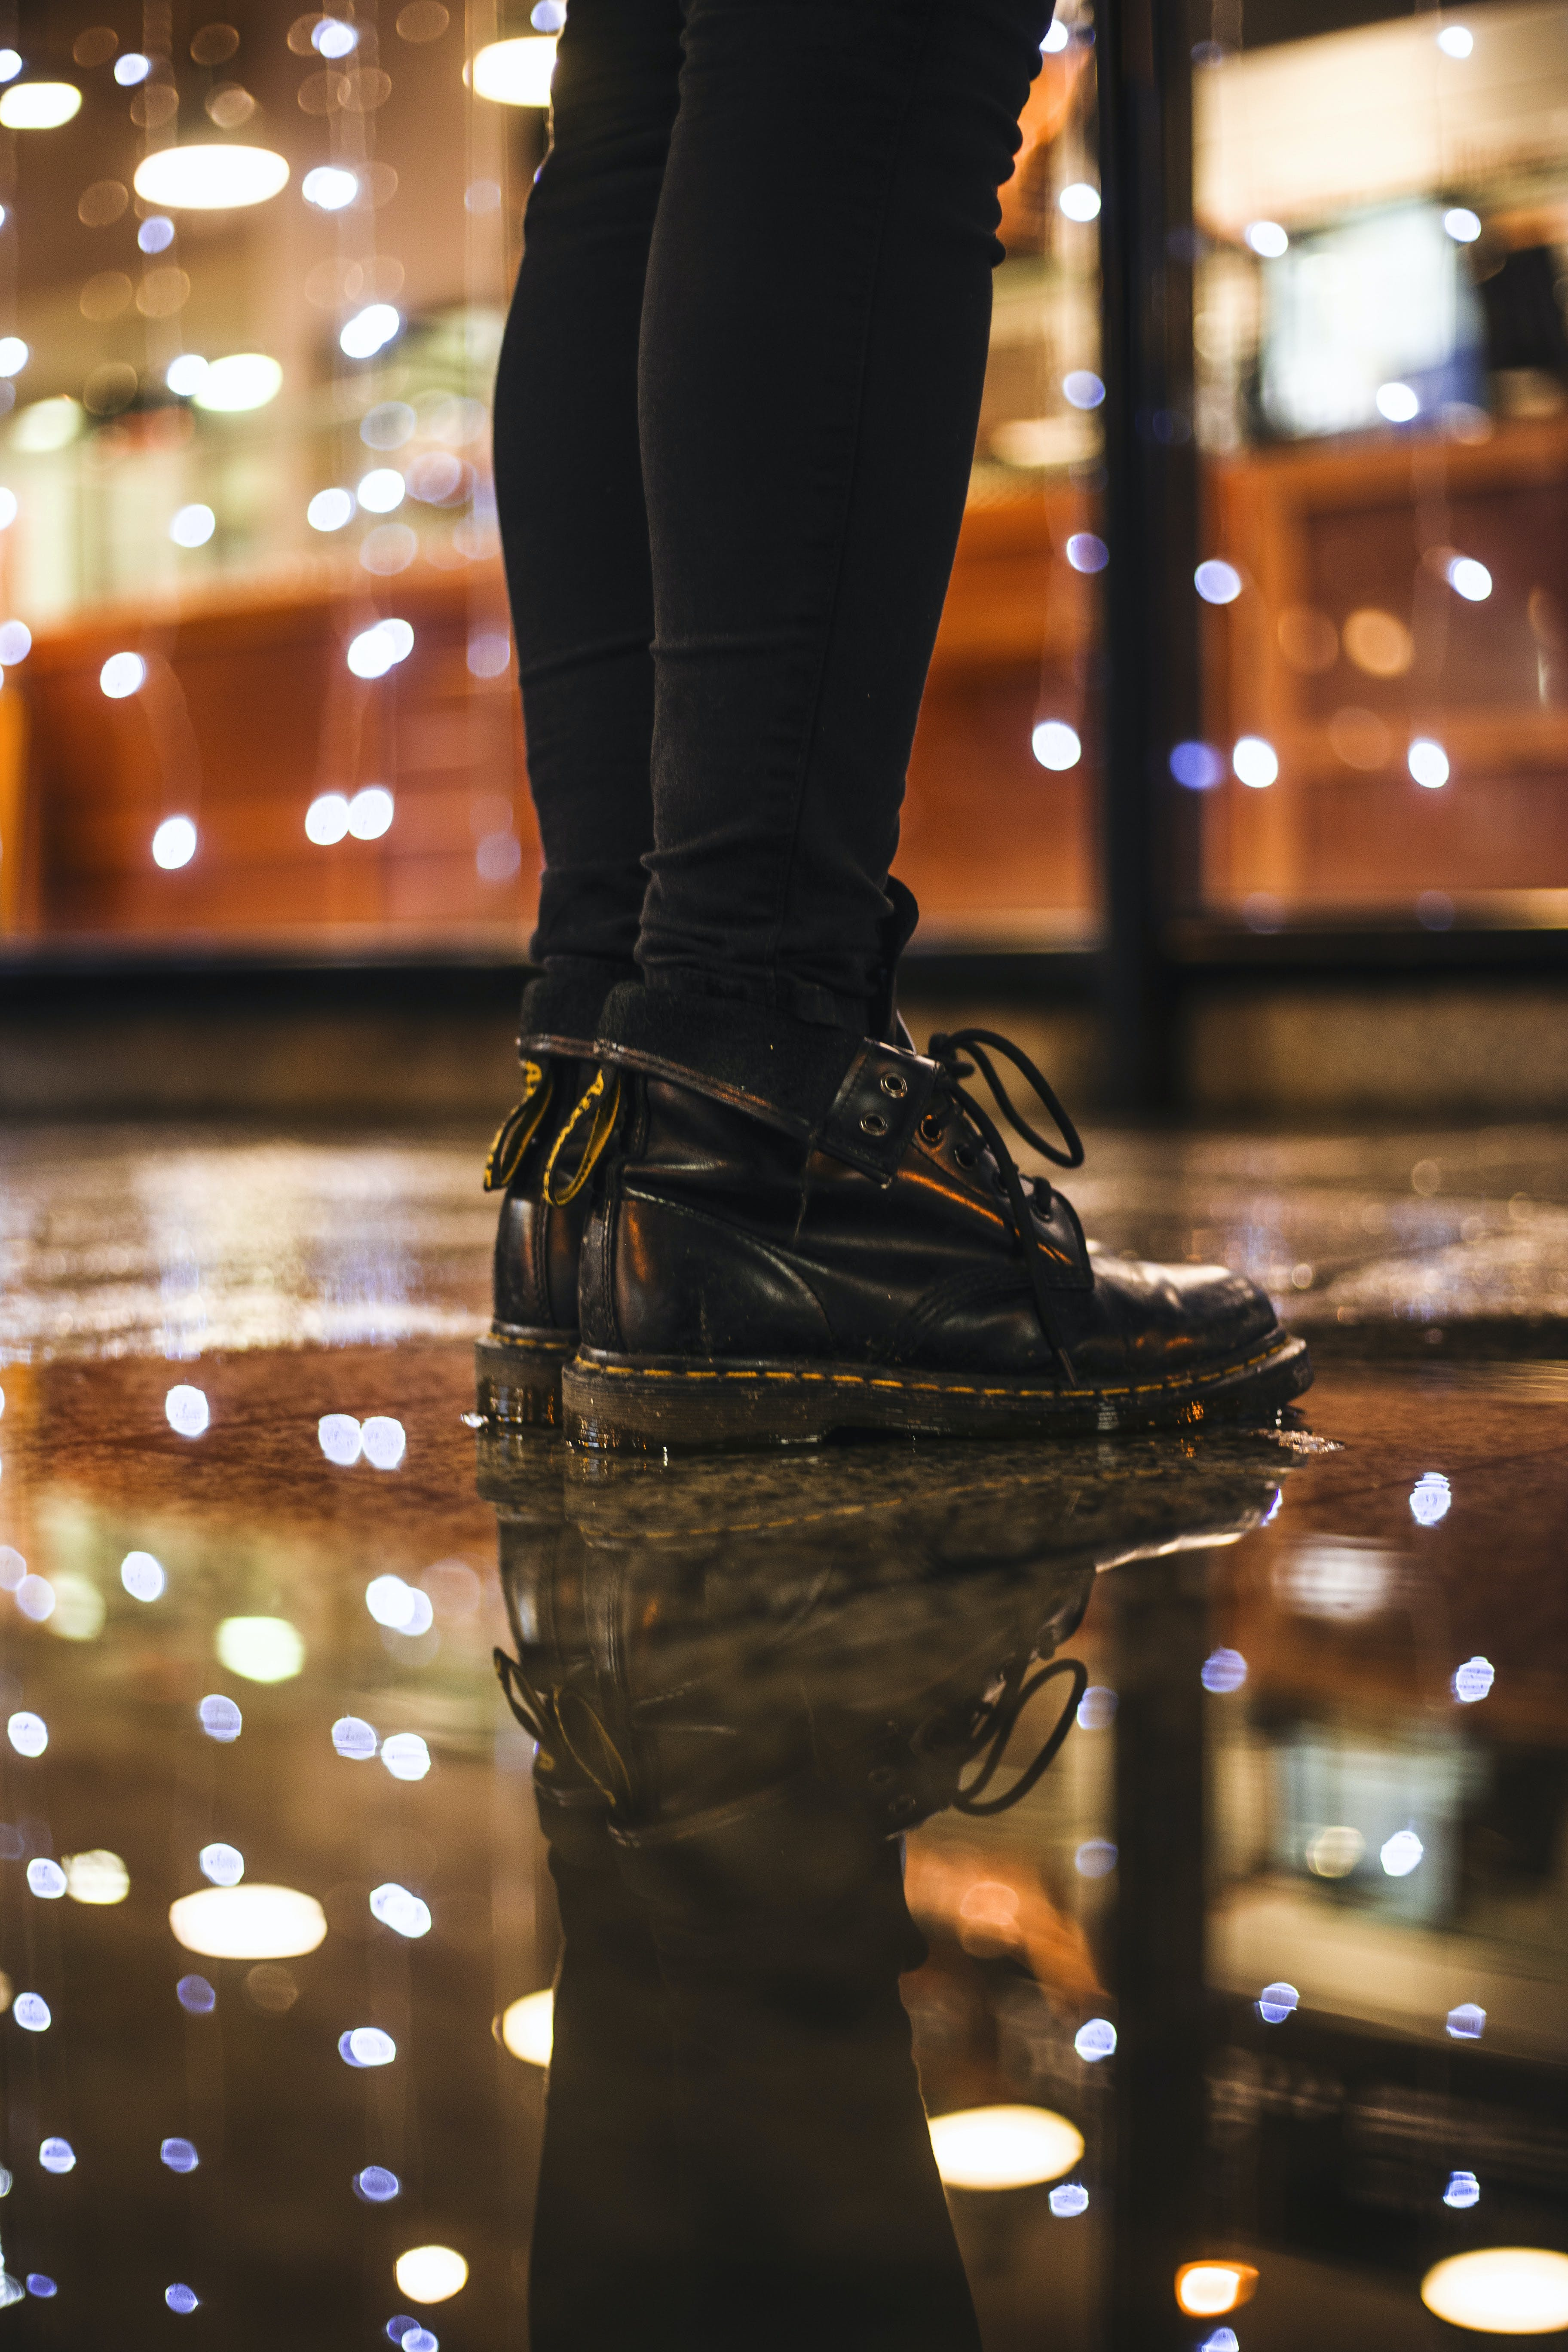 Photo of Person Wearing Black Fitted Jeans and Black Dr.martens Boots Standing on Black Floor Tiles